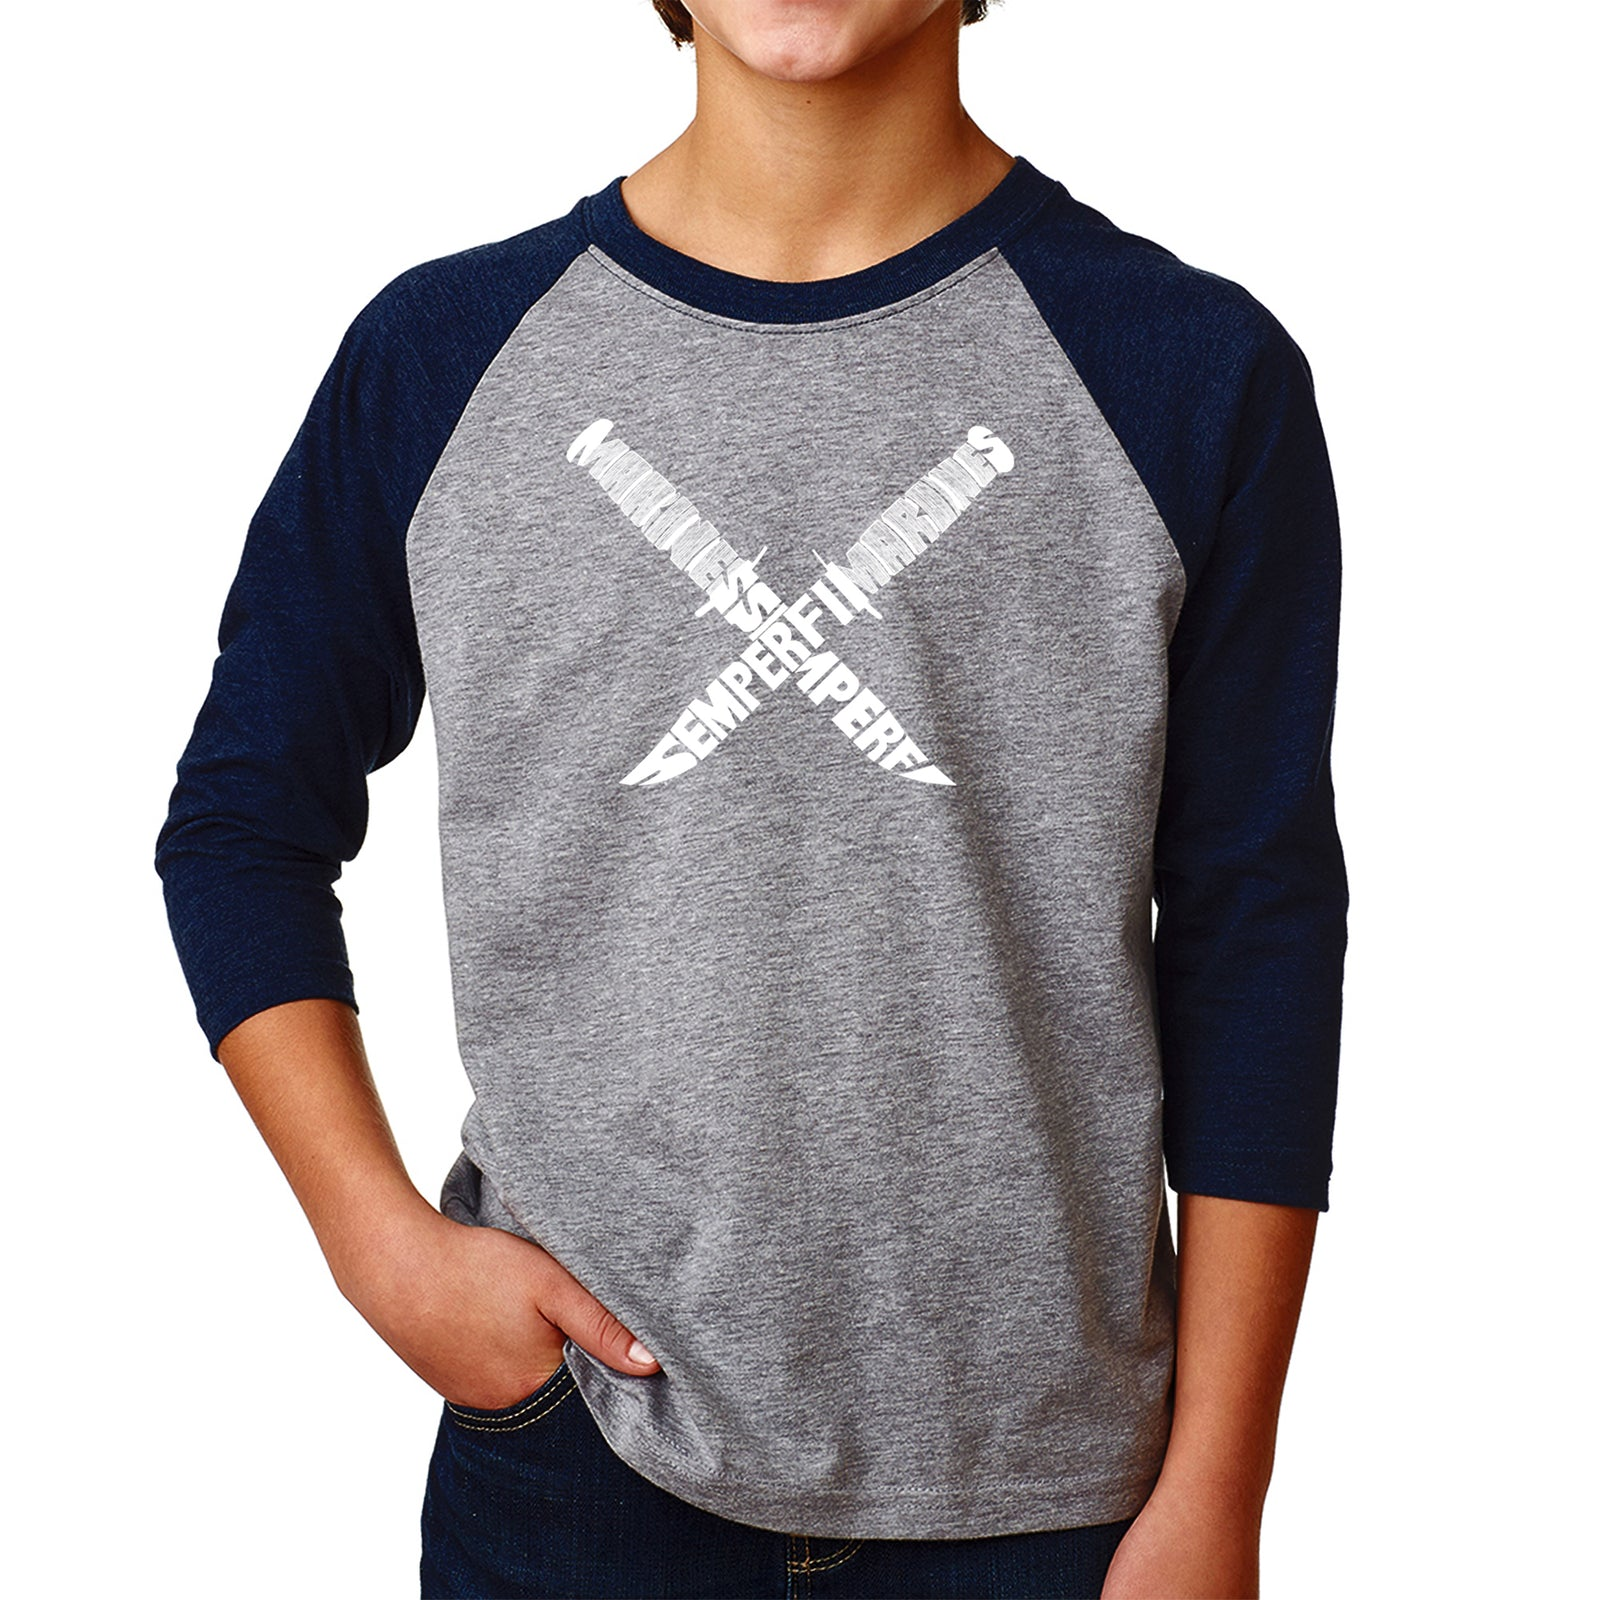 Boy's Raglan Baseball Word Art T-shirt - Semper Fi